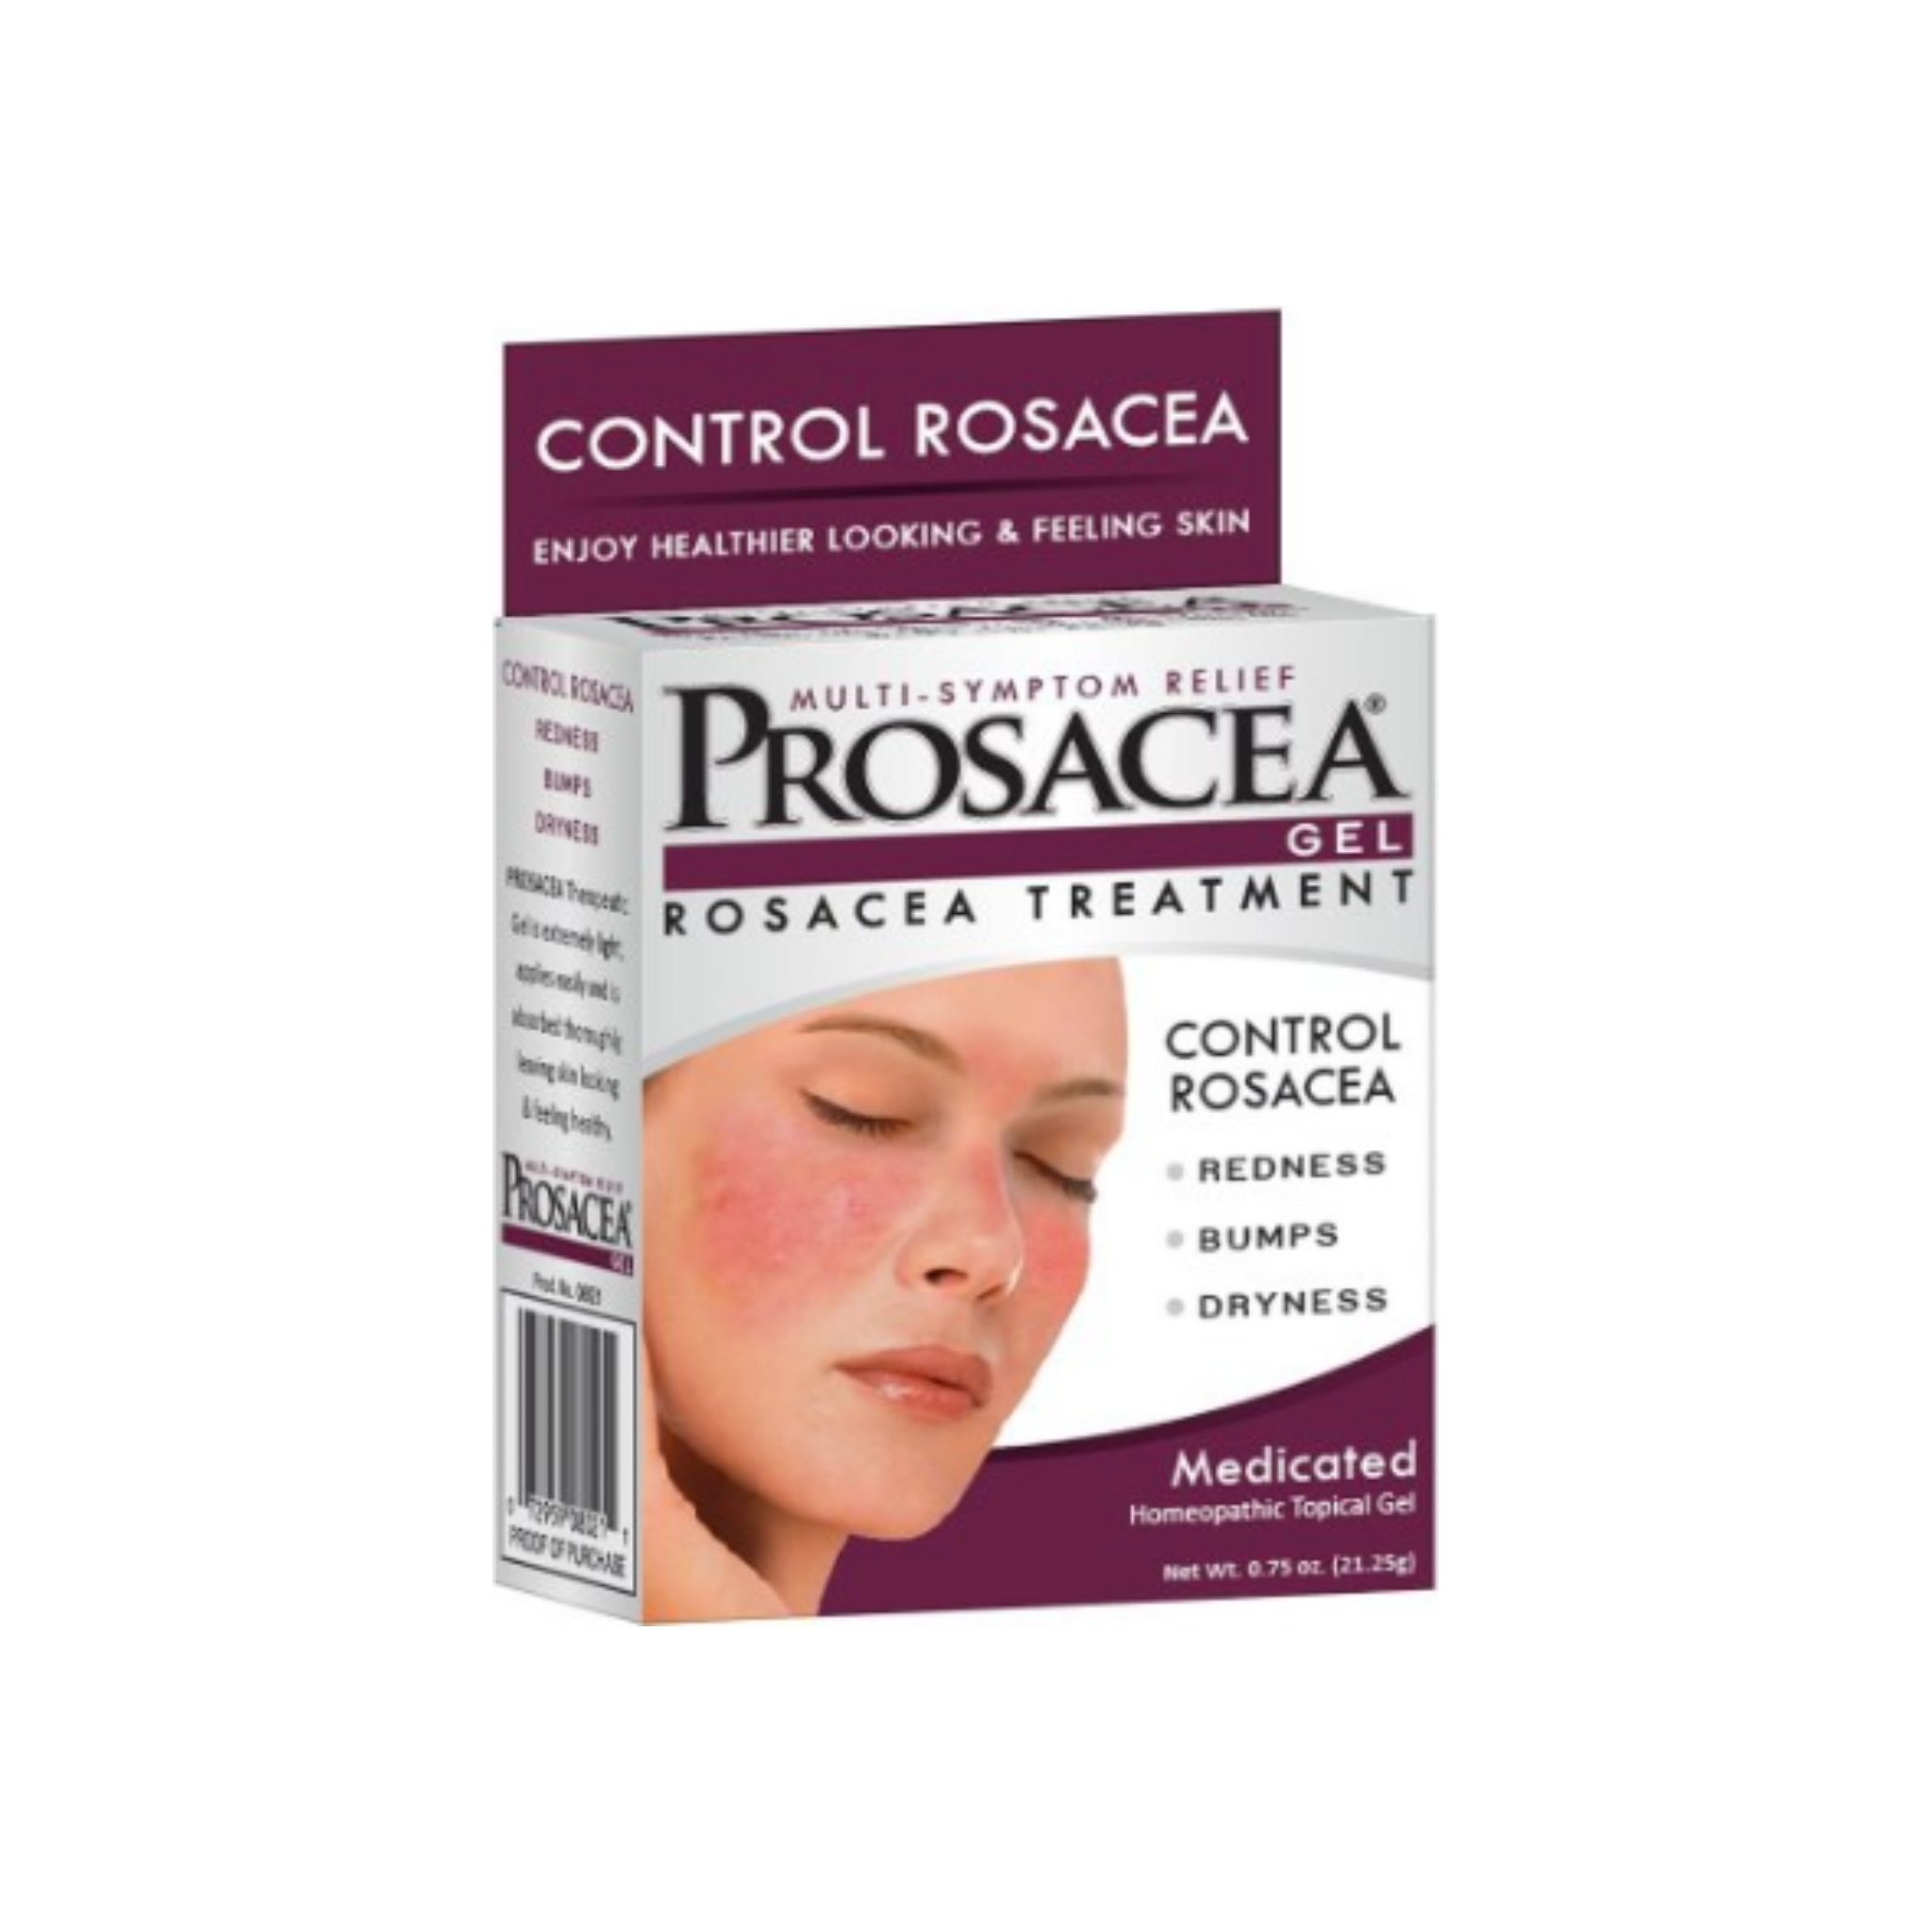 Prosacea Rosacea Treatment Homeopathic Topical Gel 75 Oz